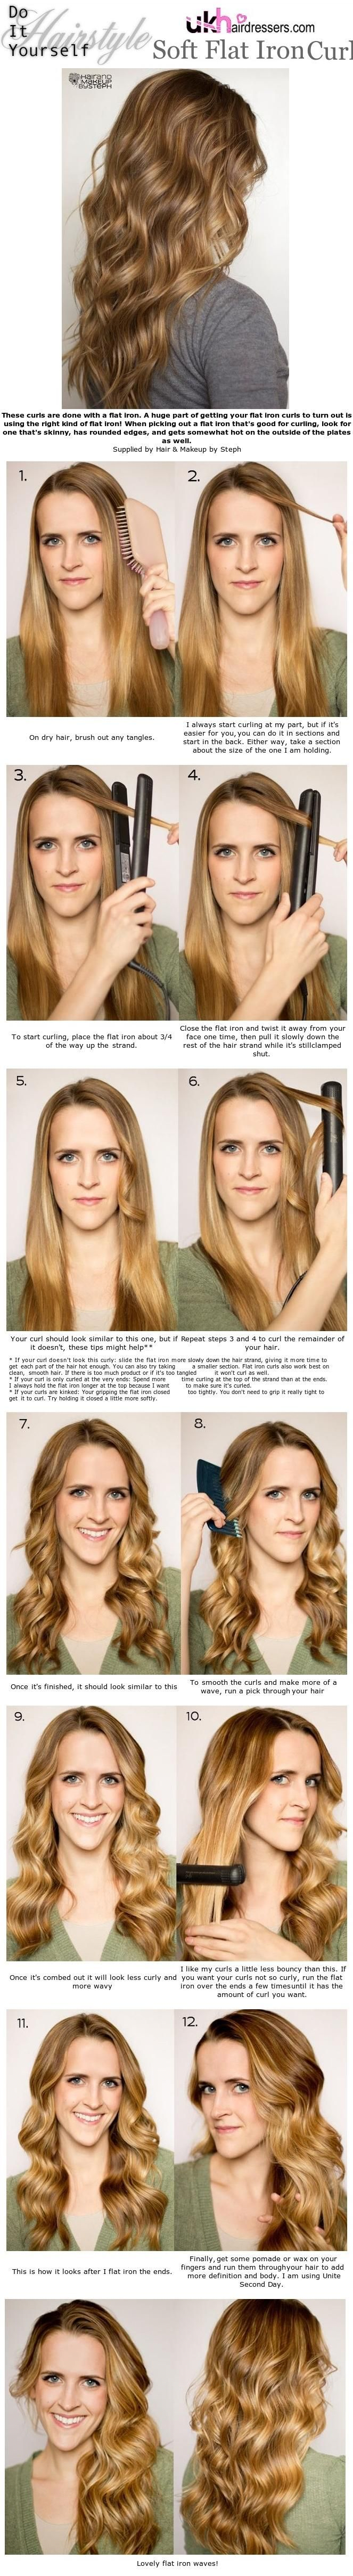 supereasy hairstyles for lazy girls with tutorials beauty